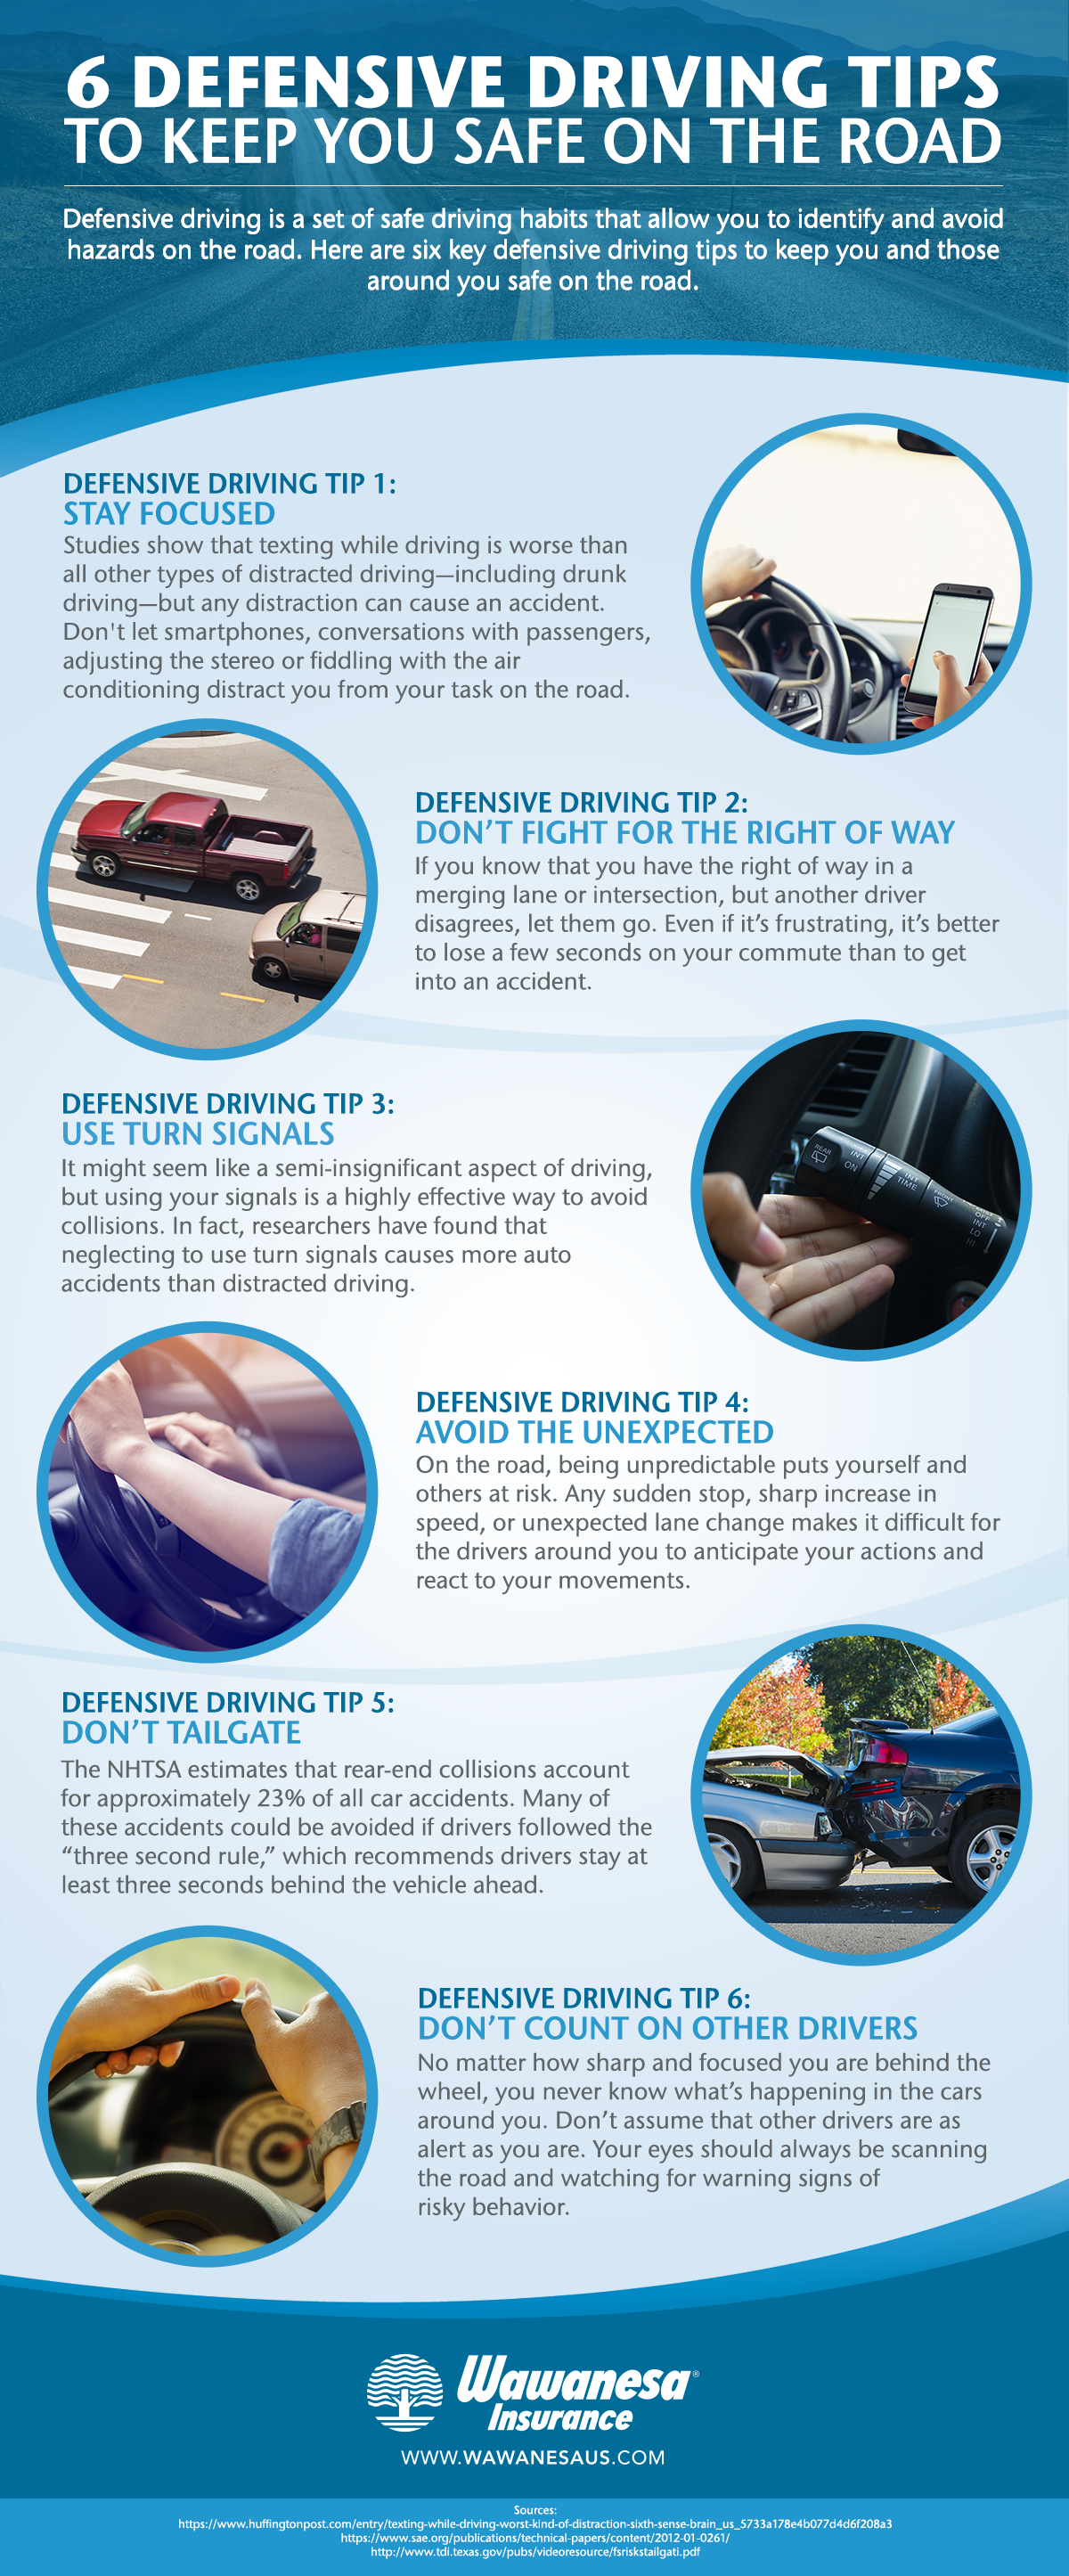 Defensive driving tips infographic